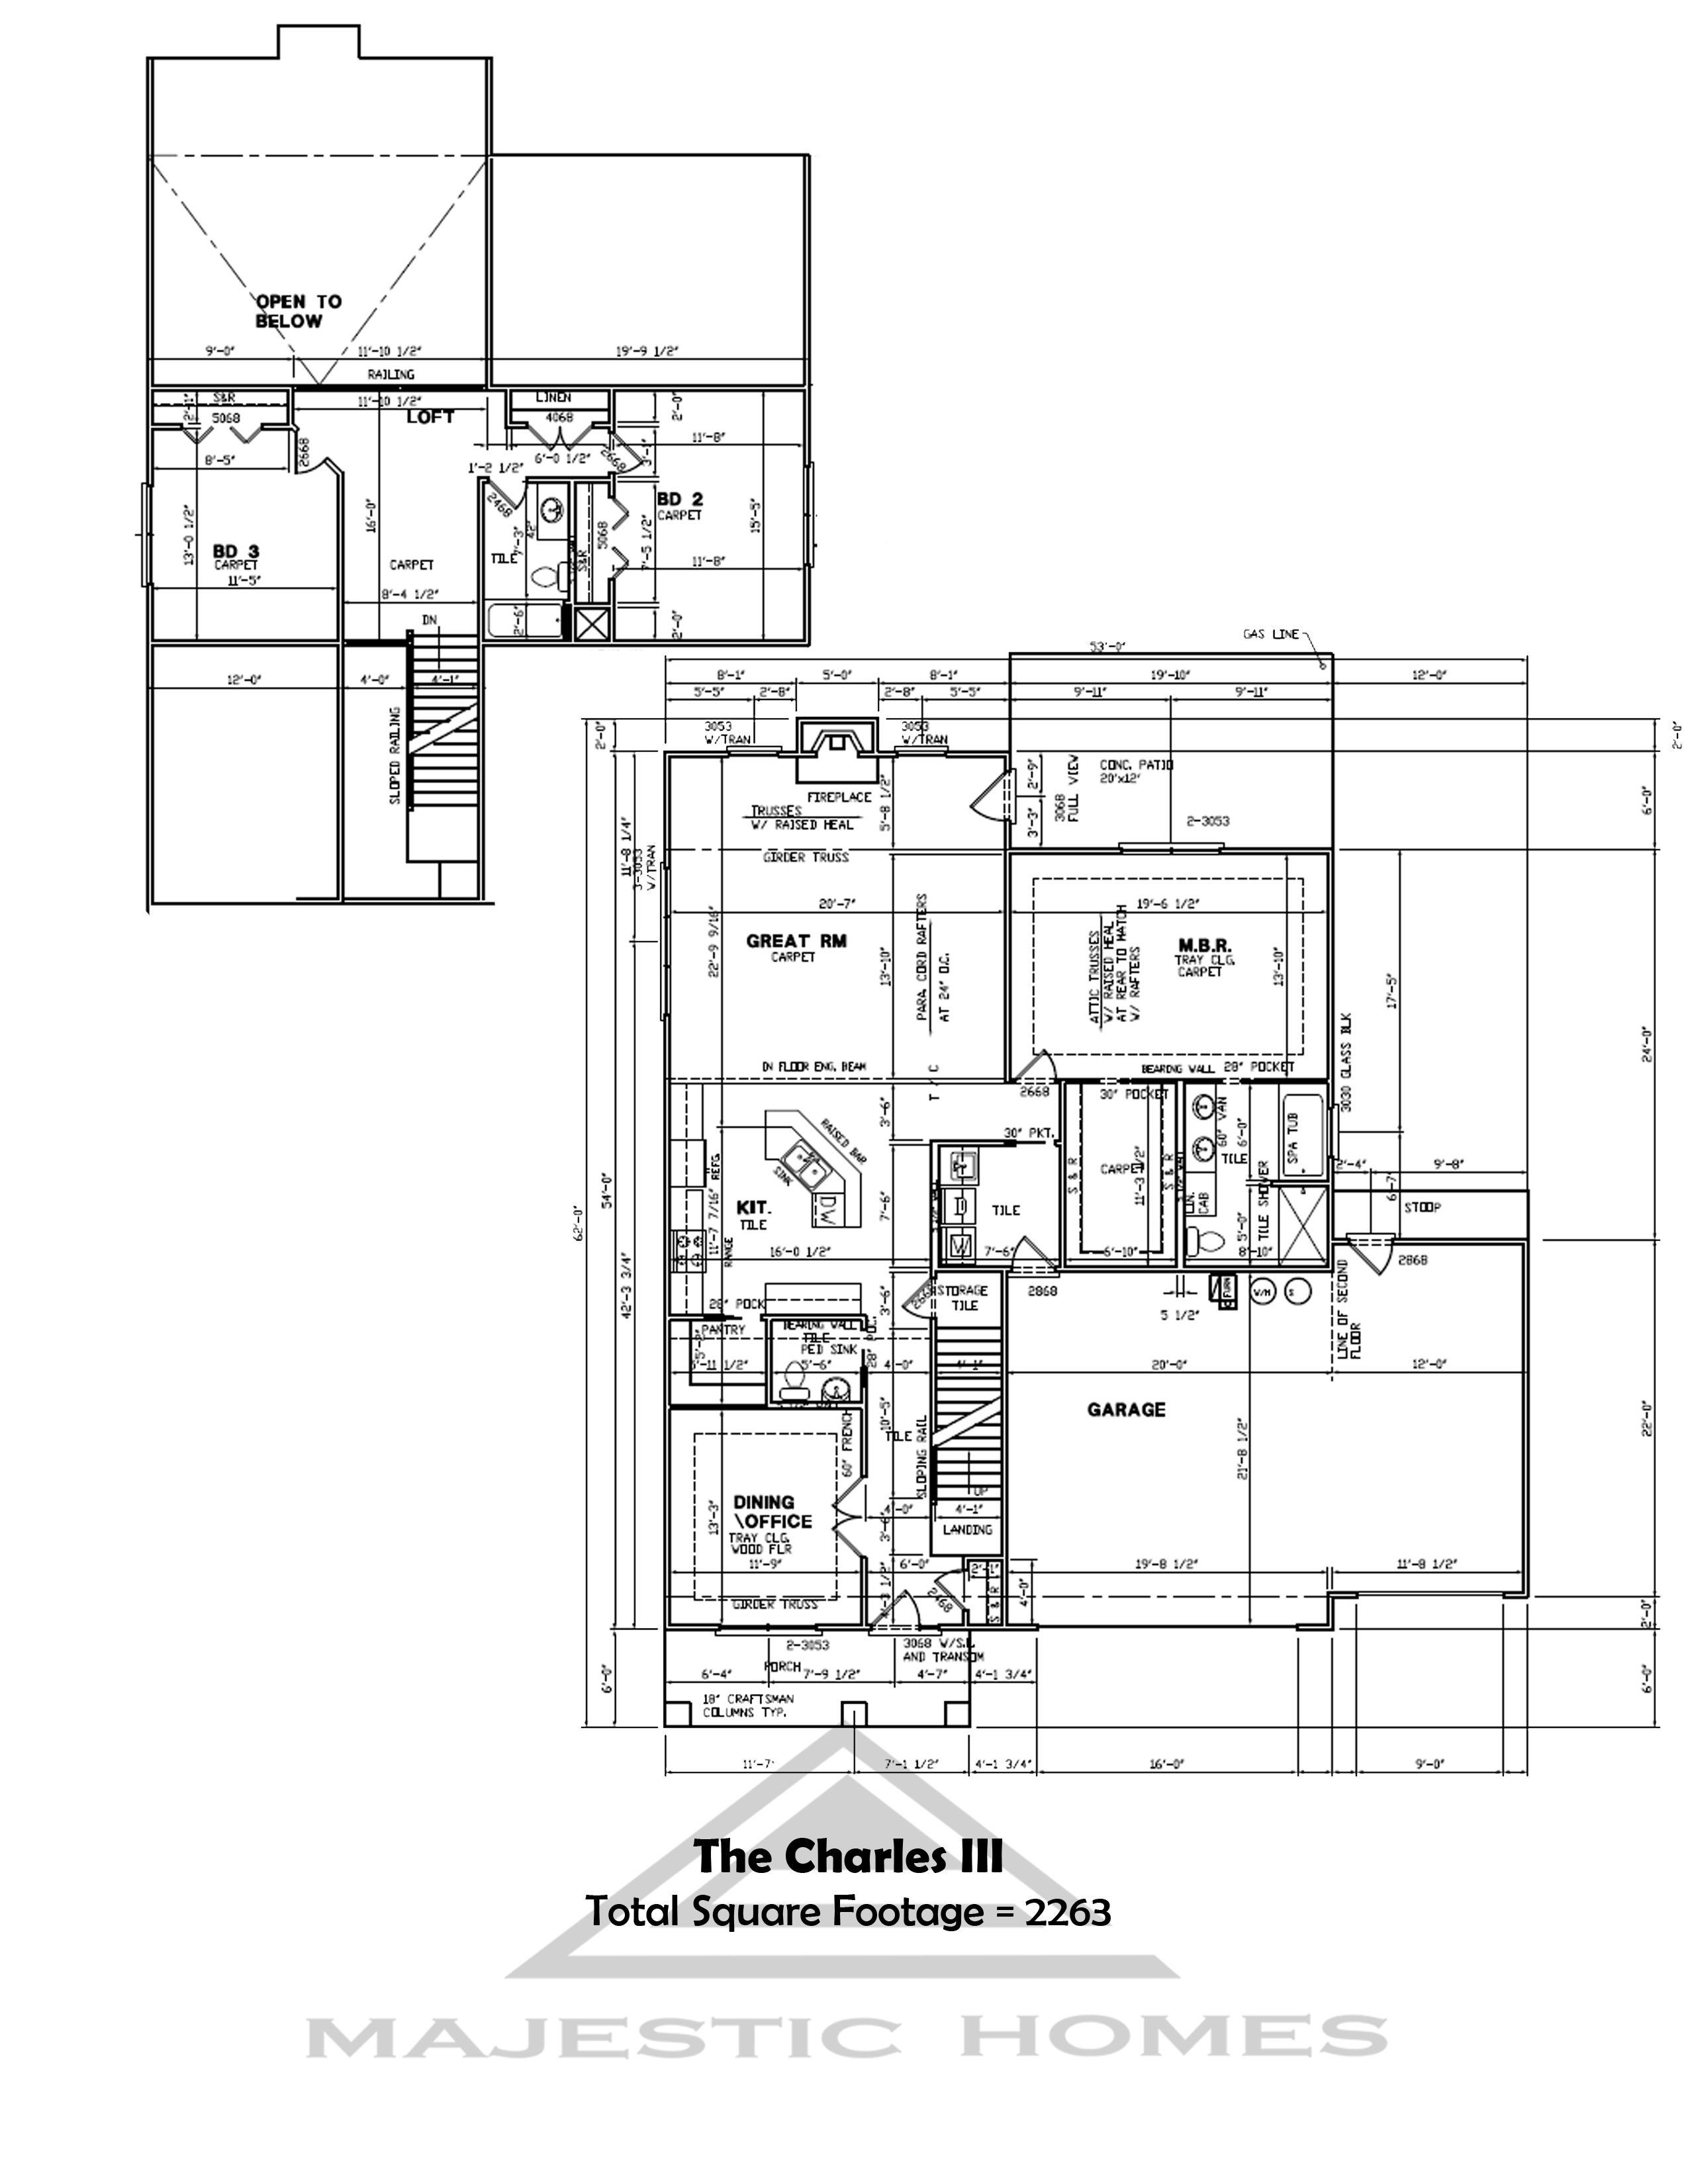 Majestic homes floor plans indiana house design plans for Indianapolis home builders floor plans